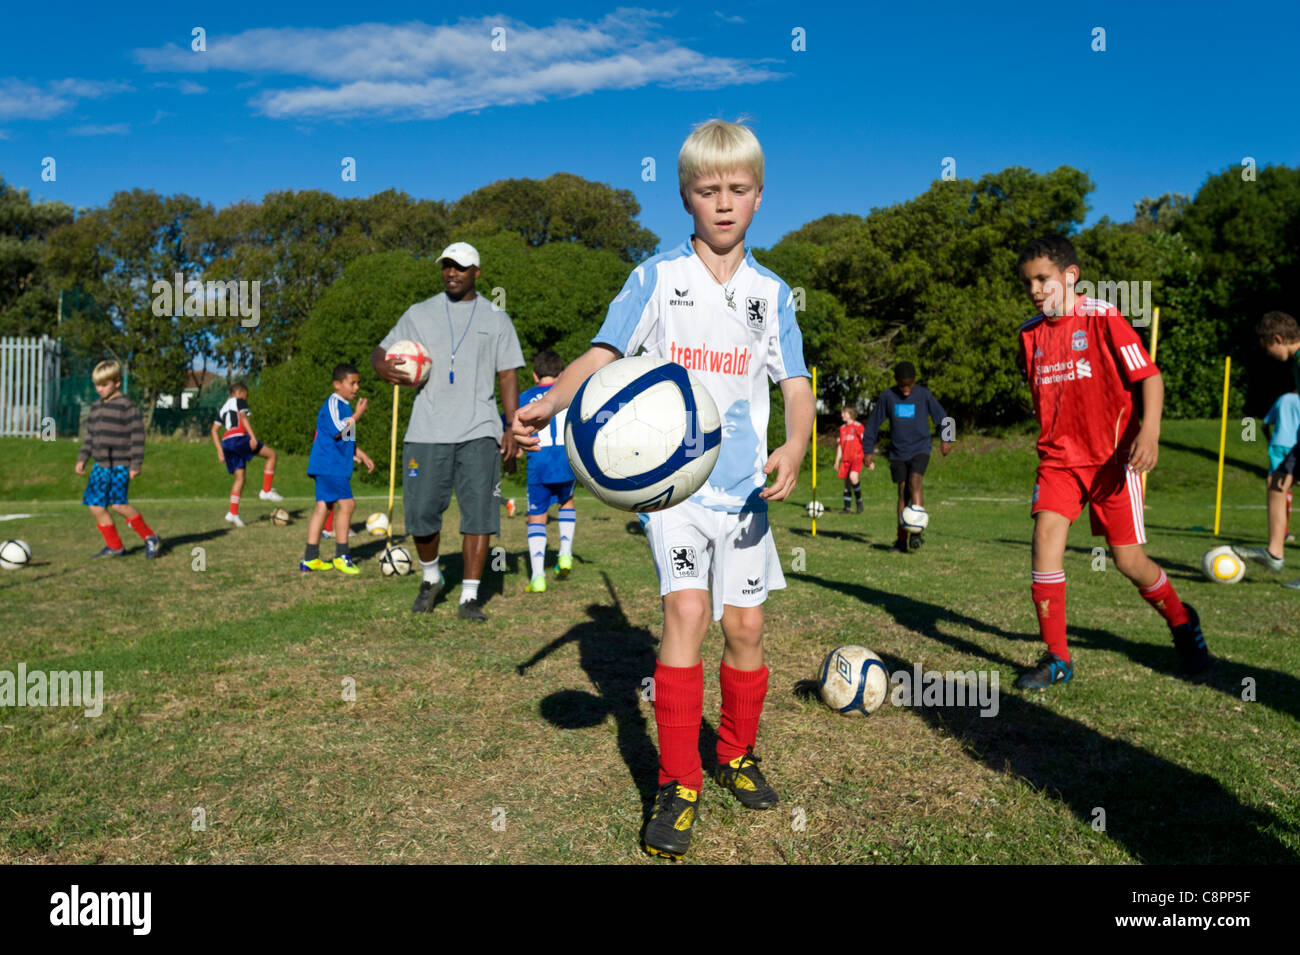 Football coach watching junior players practicing ball skills Cape Town South Africa - Stock Image